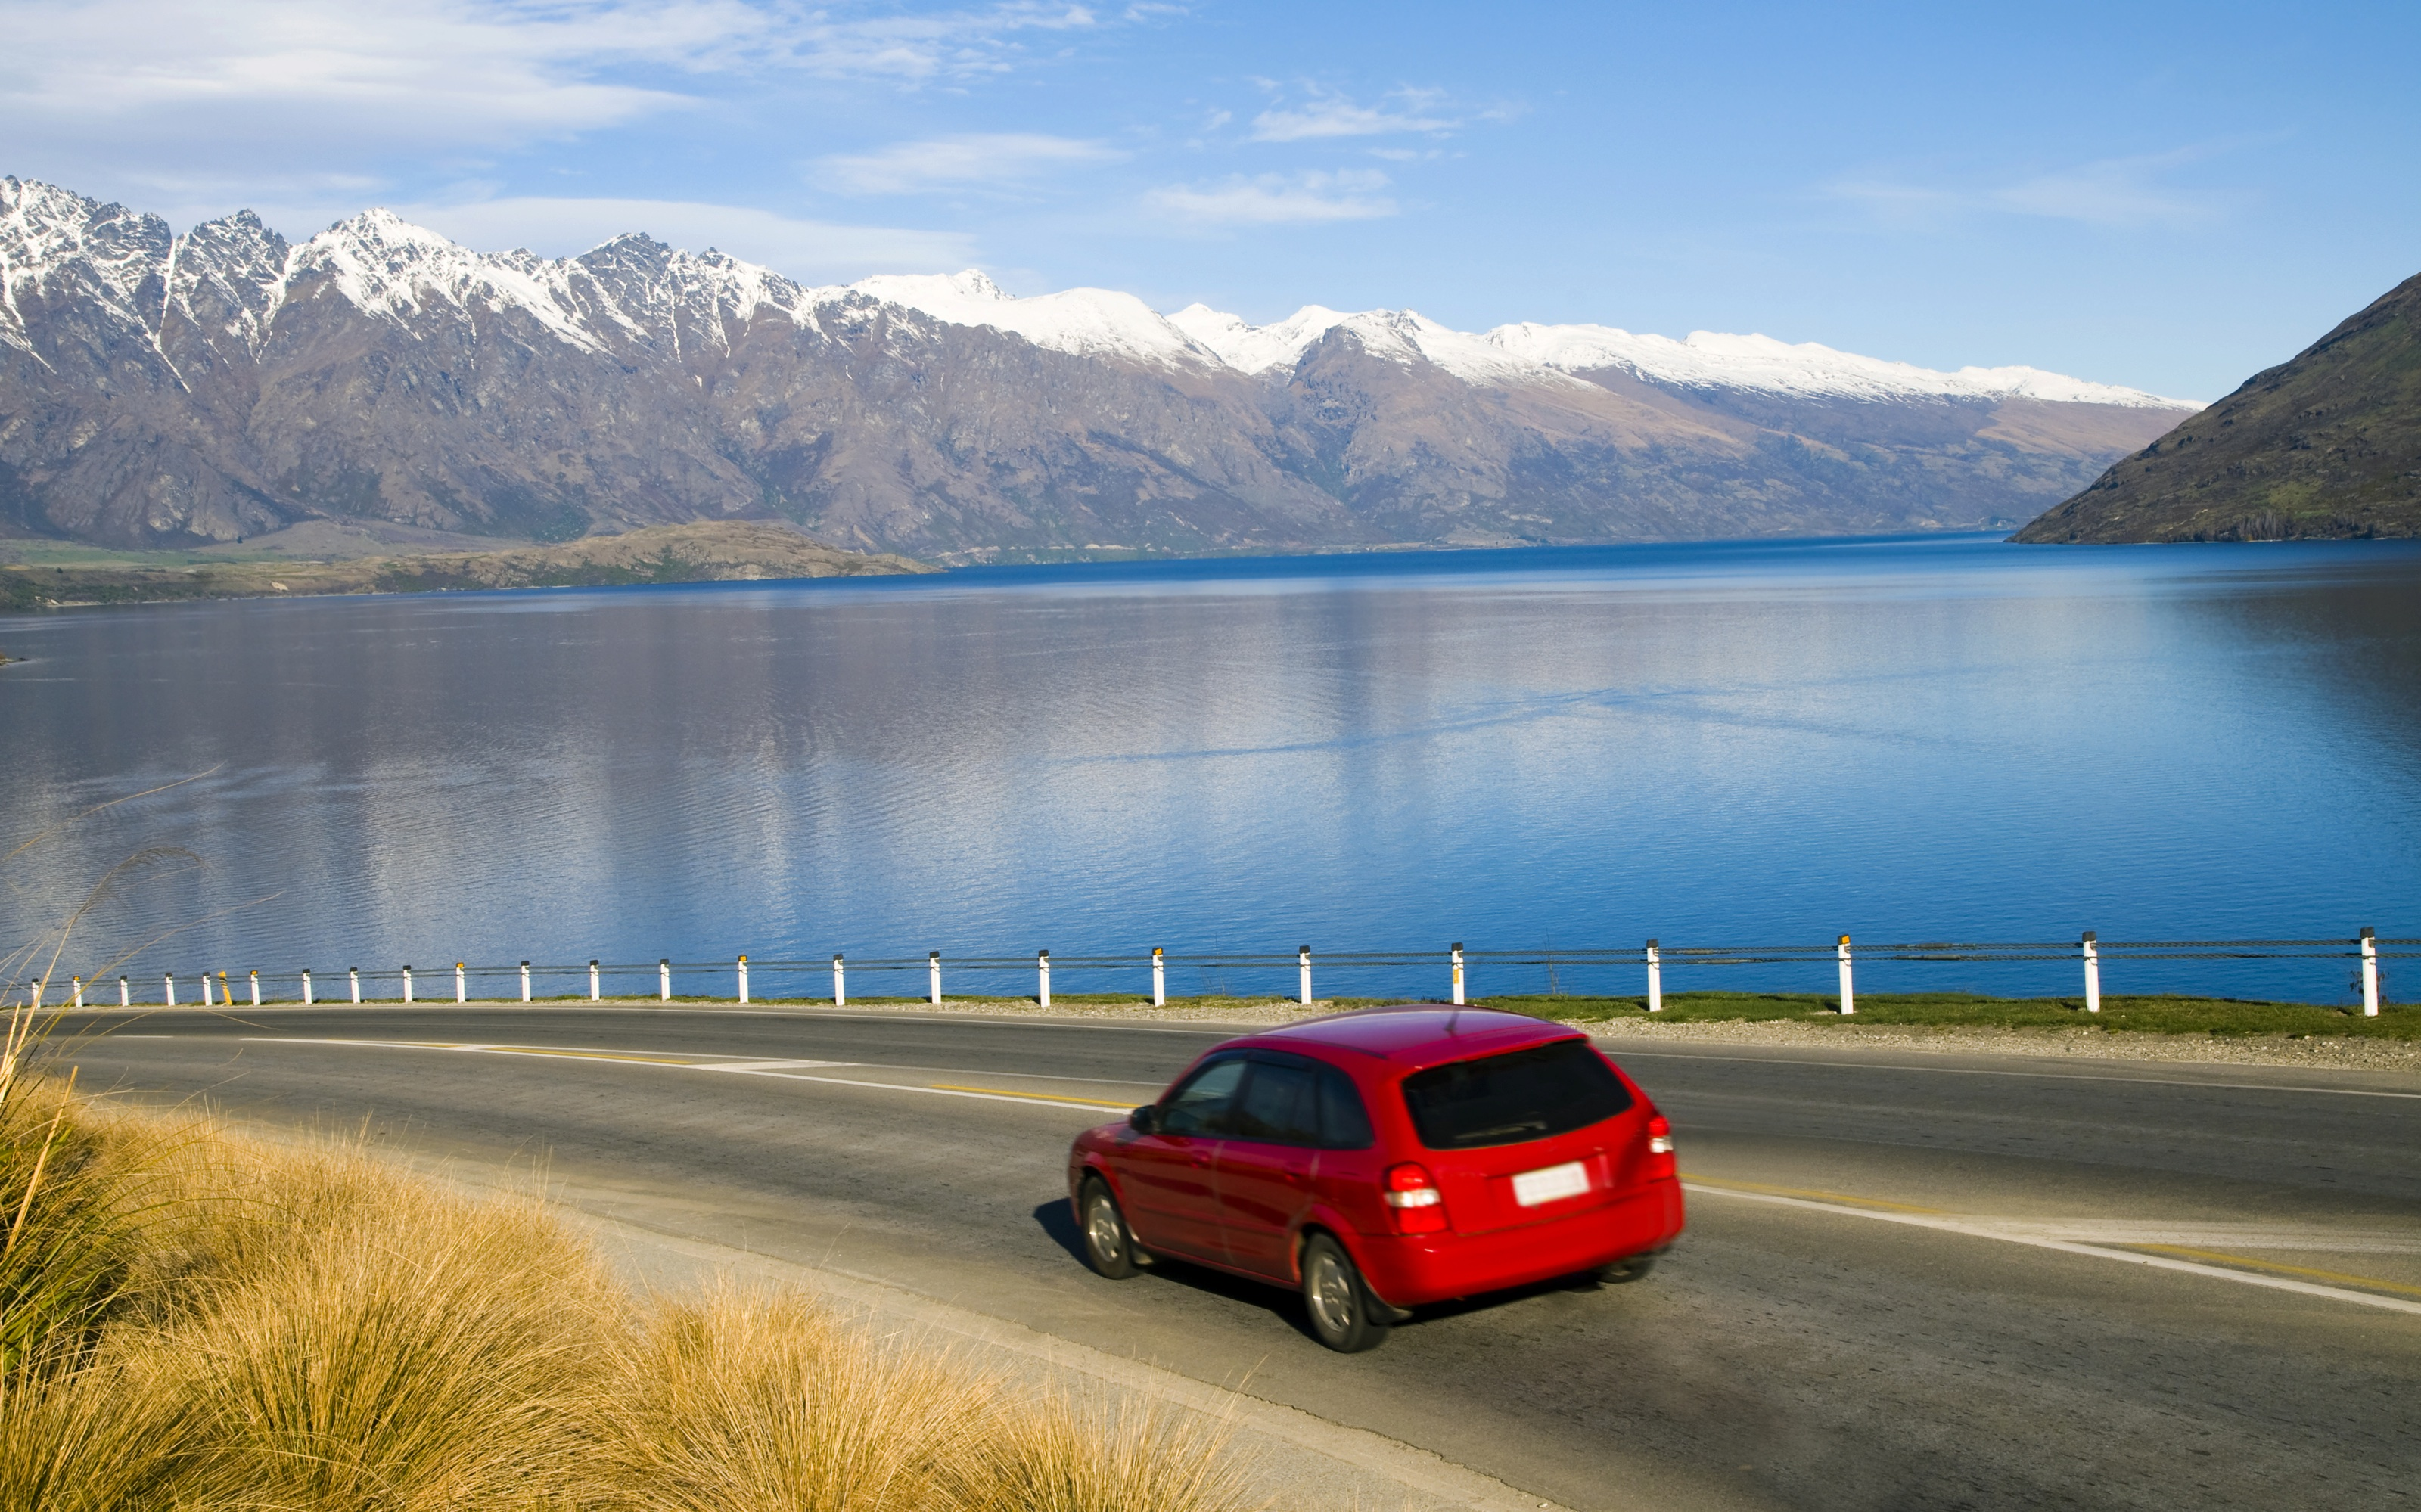 Car Rental Convenience and Economy in Your Trip